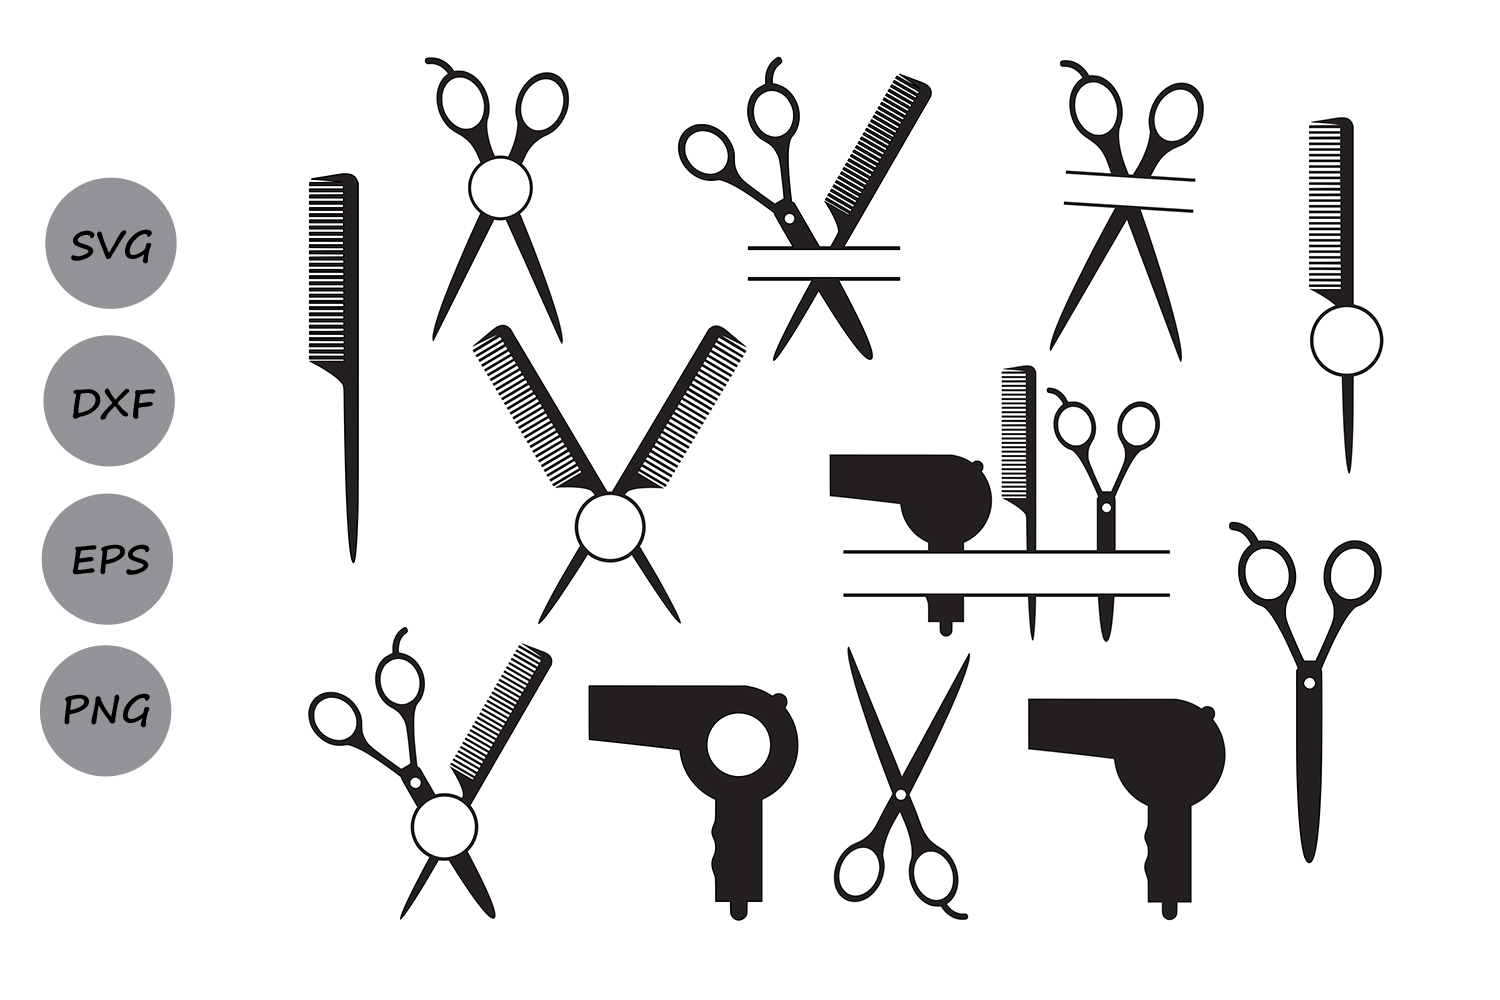 Hairdresser SVG Cut Files, Hairstylist SVG, Hairdresser Monogram SVG,  Hairdresser Scissors Svg, Dxf, Svg, Silhouette Svg, Commercial Use